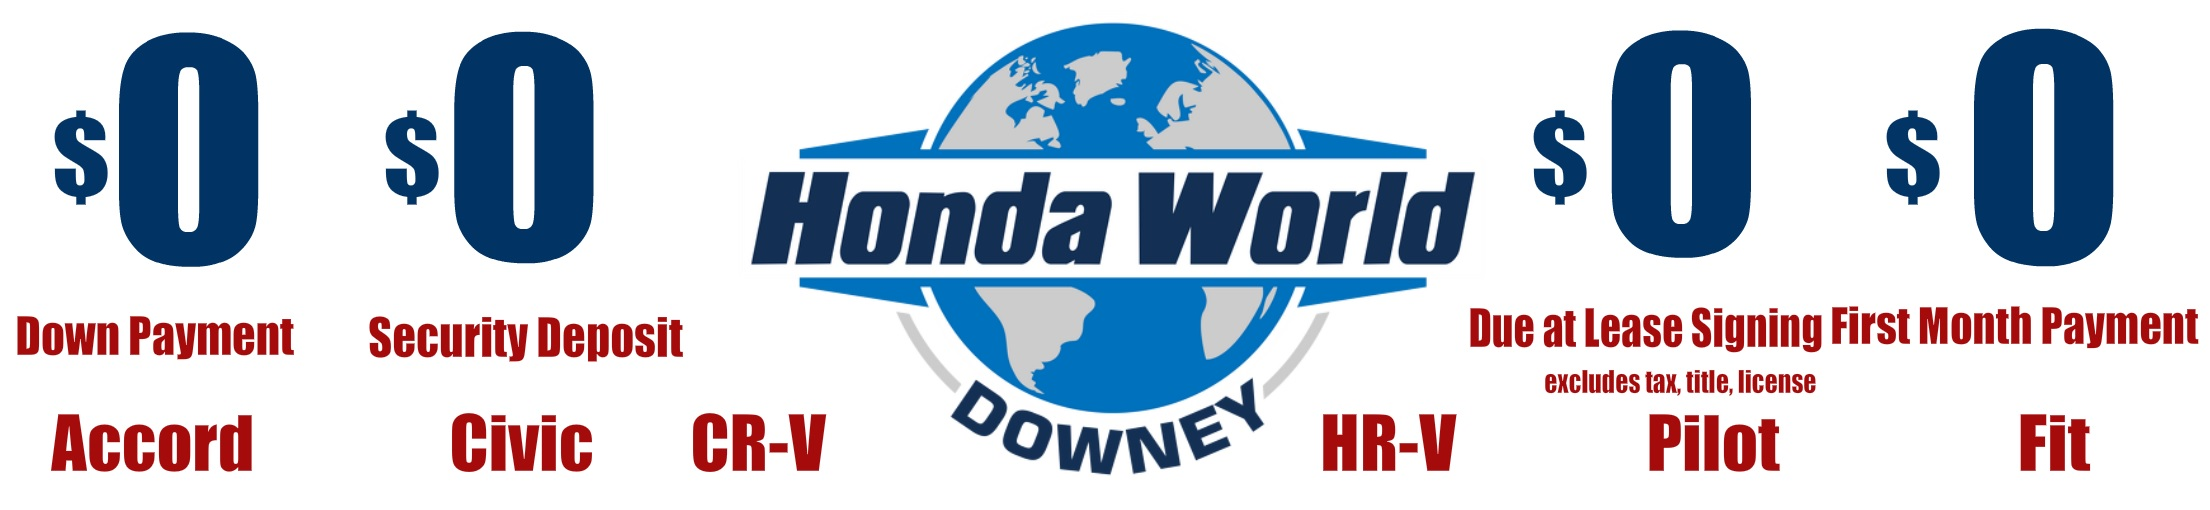 weekly honda world downey savings and discounts. Black Bedroom Furniture Sets. Home Design Ideas